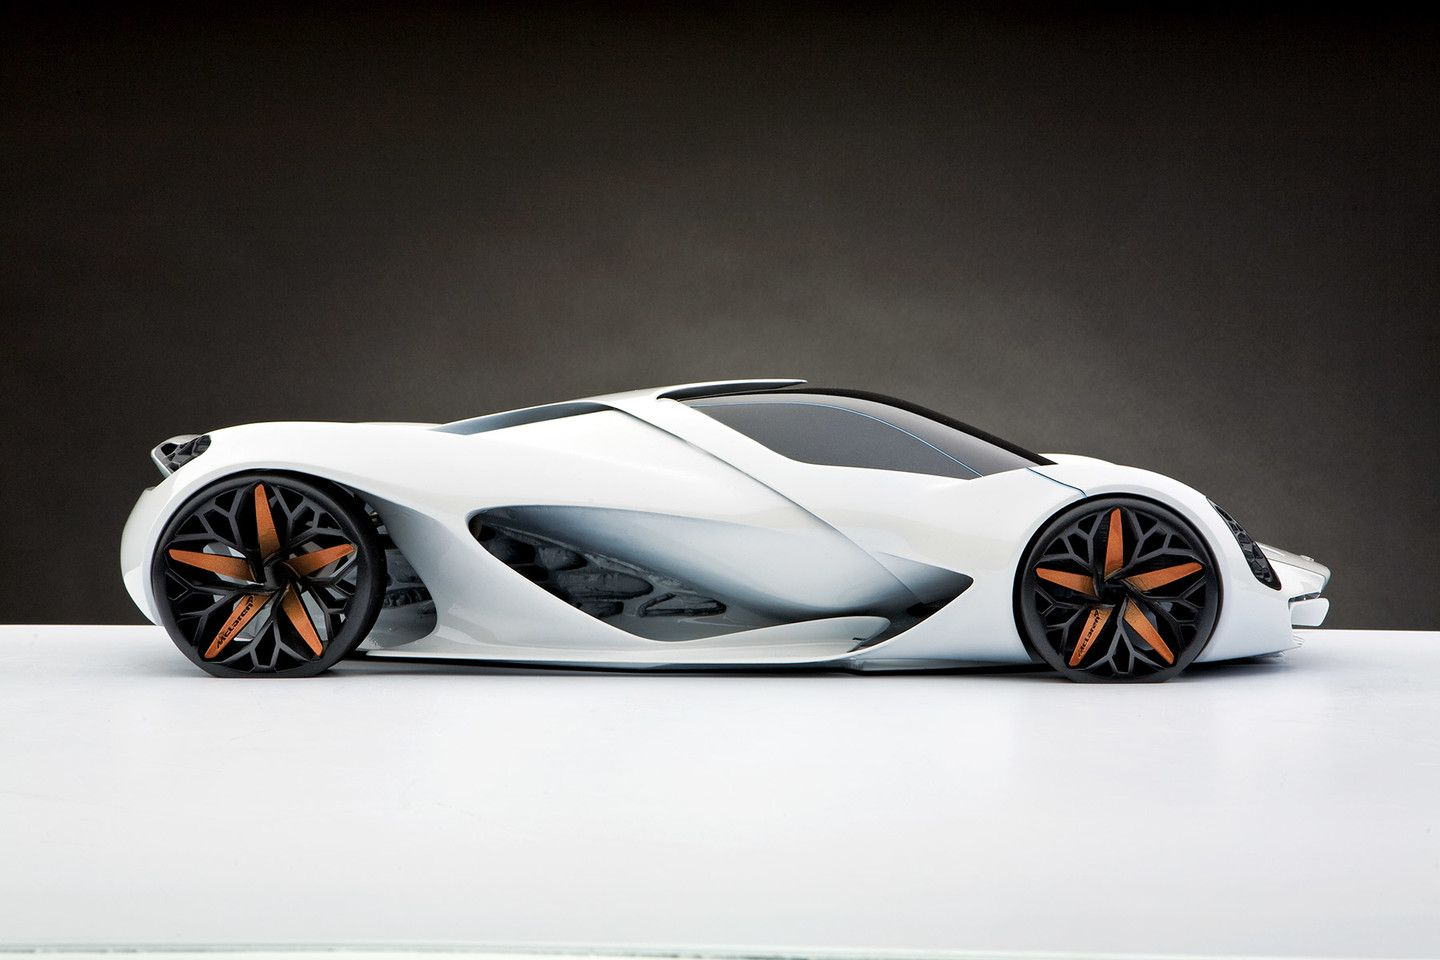 Check Out The Latest Galleries From Artcenter College Of Design Including Student Work Alumni Work And Images Of Our Concept Cars Super Cars Futuristic Cars